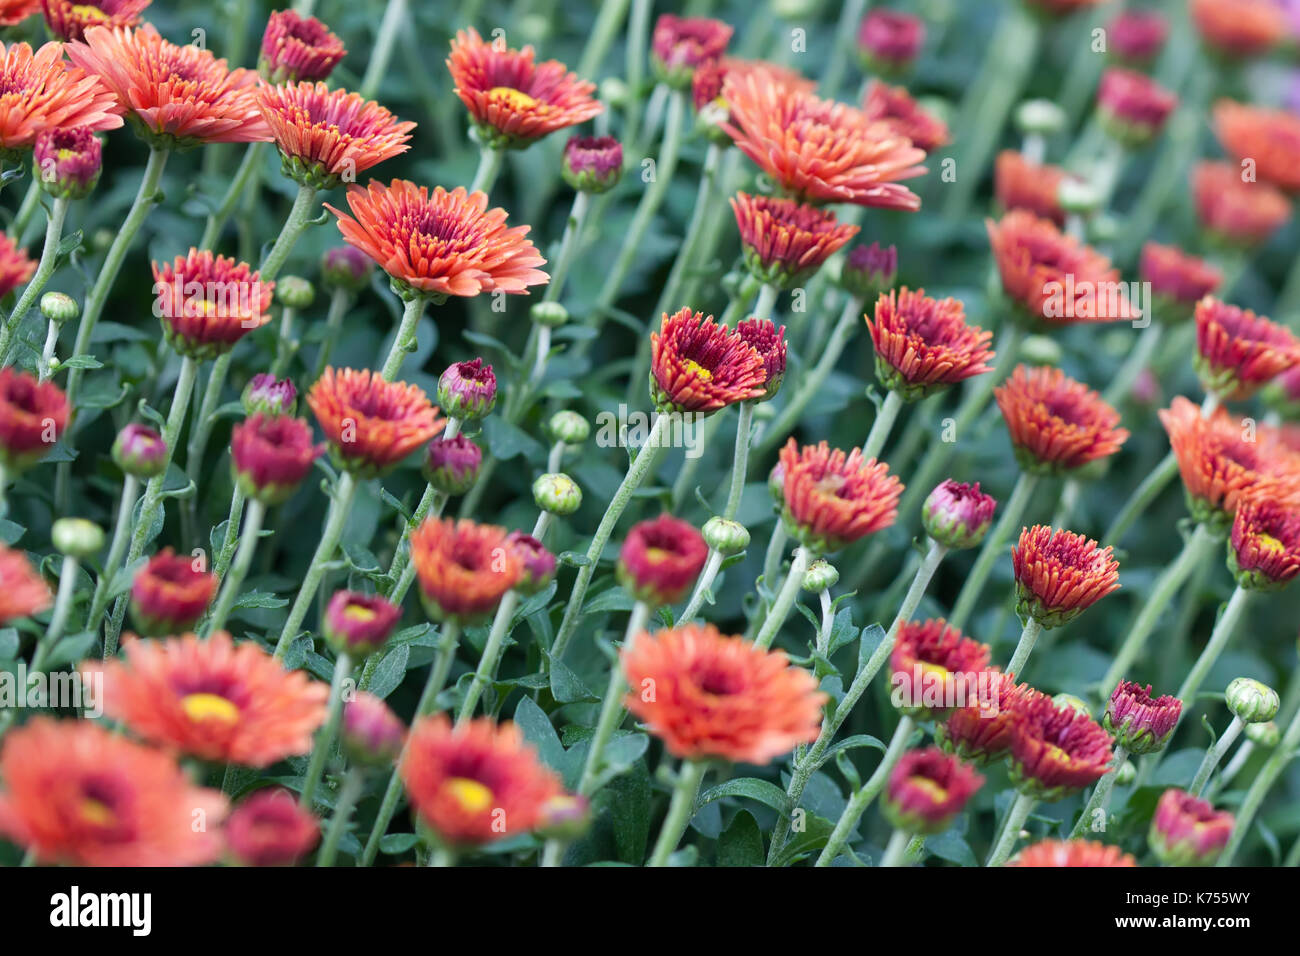 Field red chrysanthemums floral background. Many colorful mums flowers close-up photo. Selective focus - Stock Image